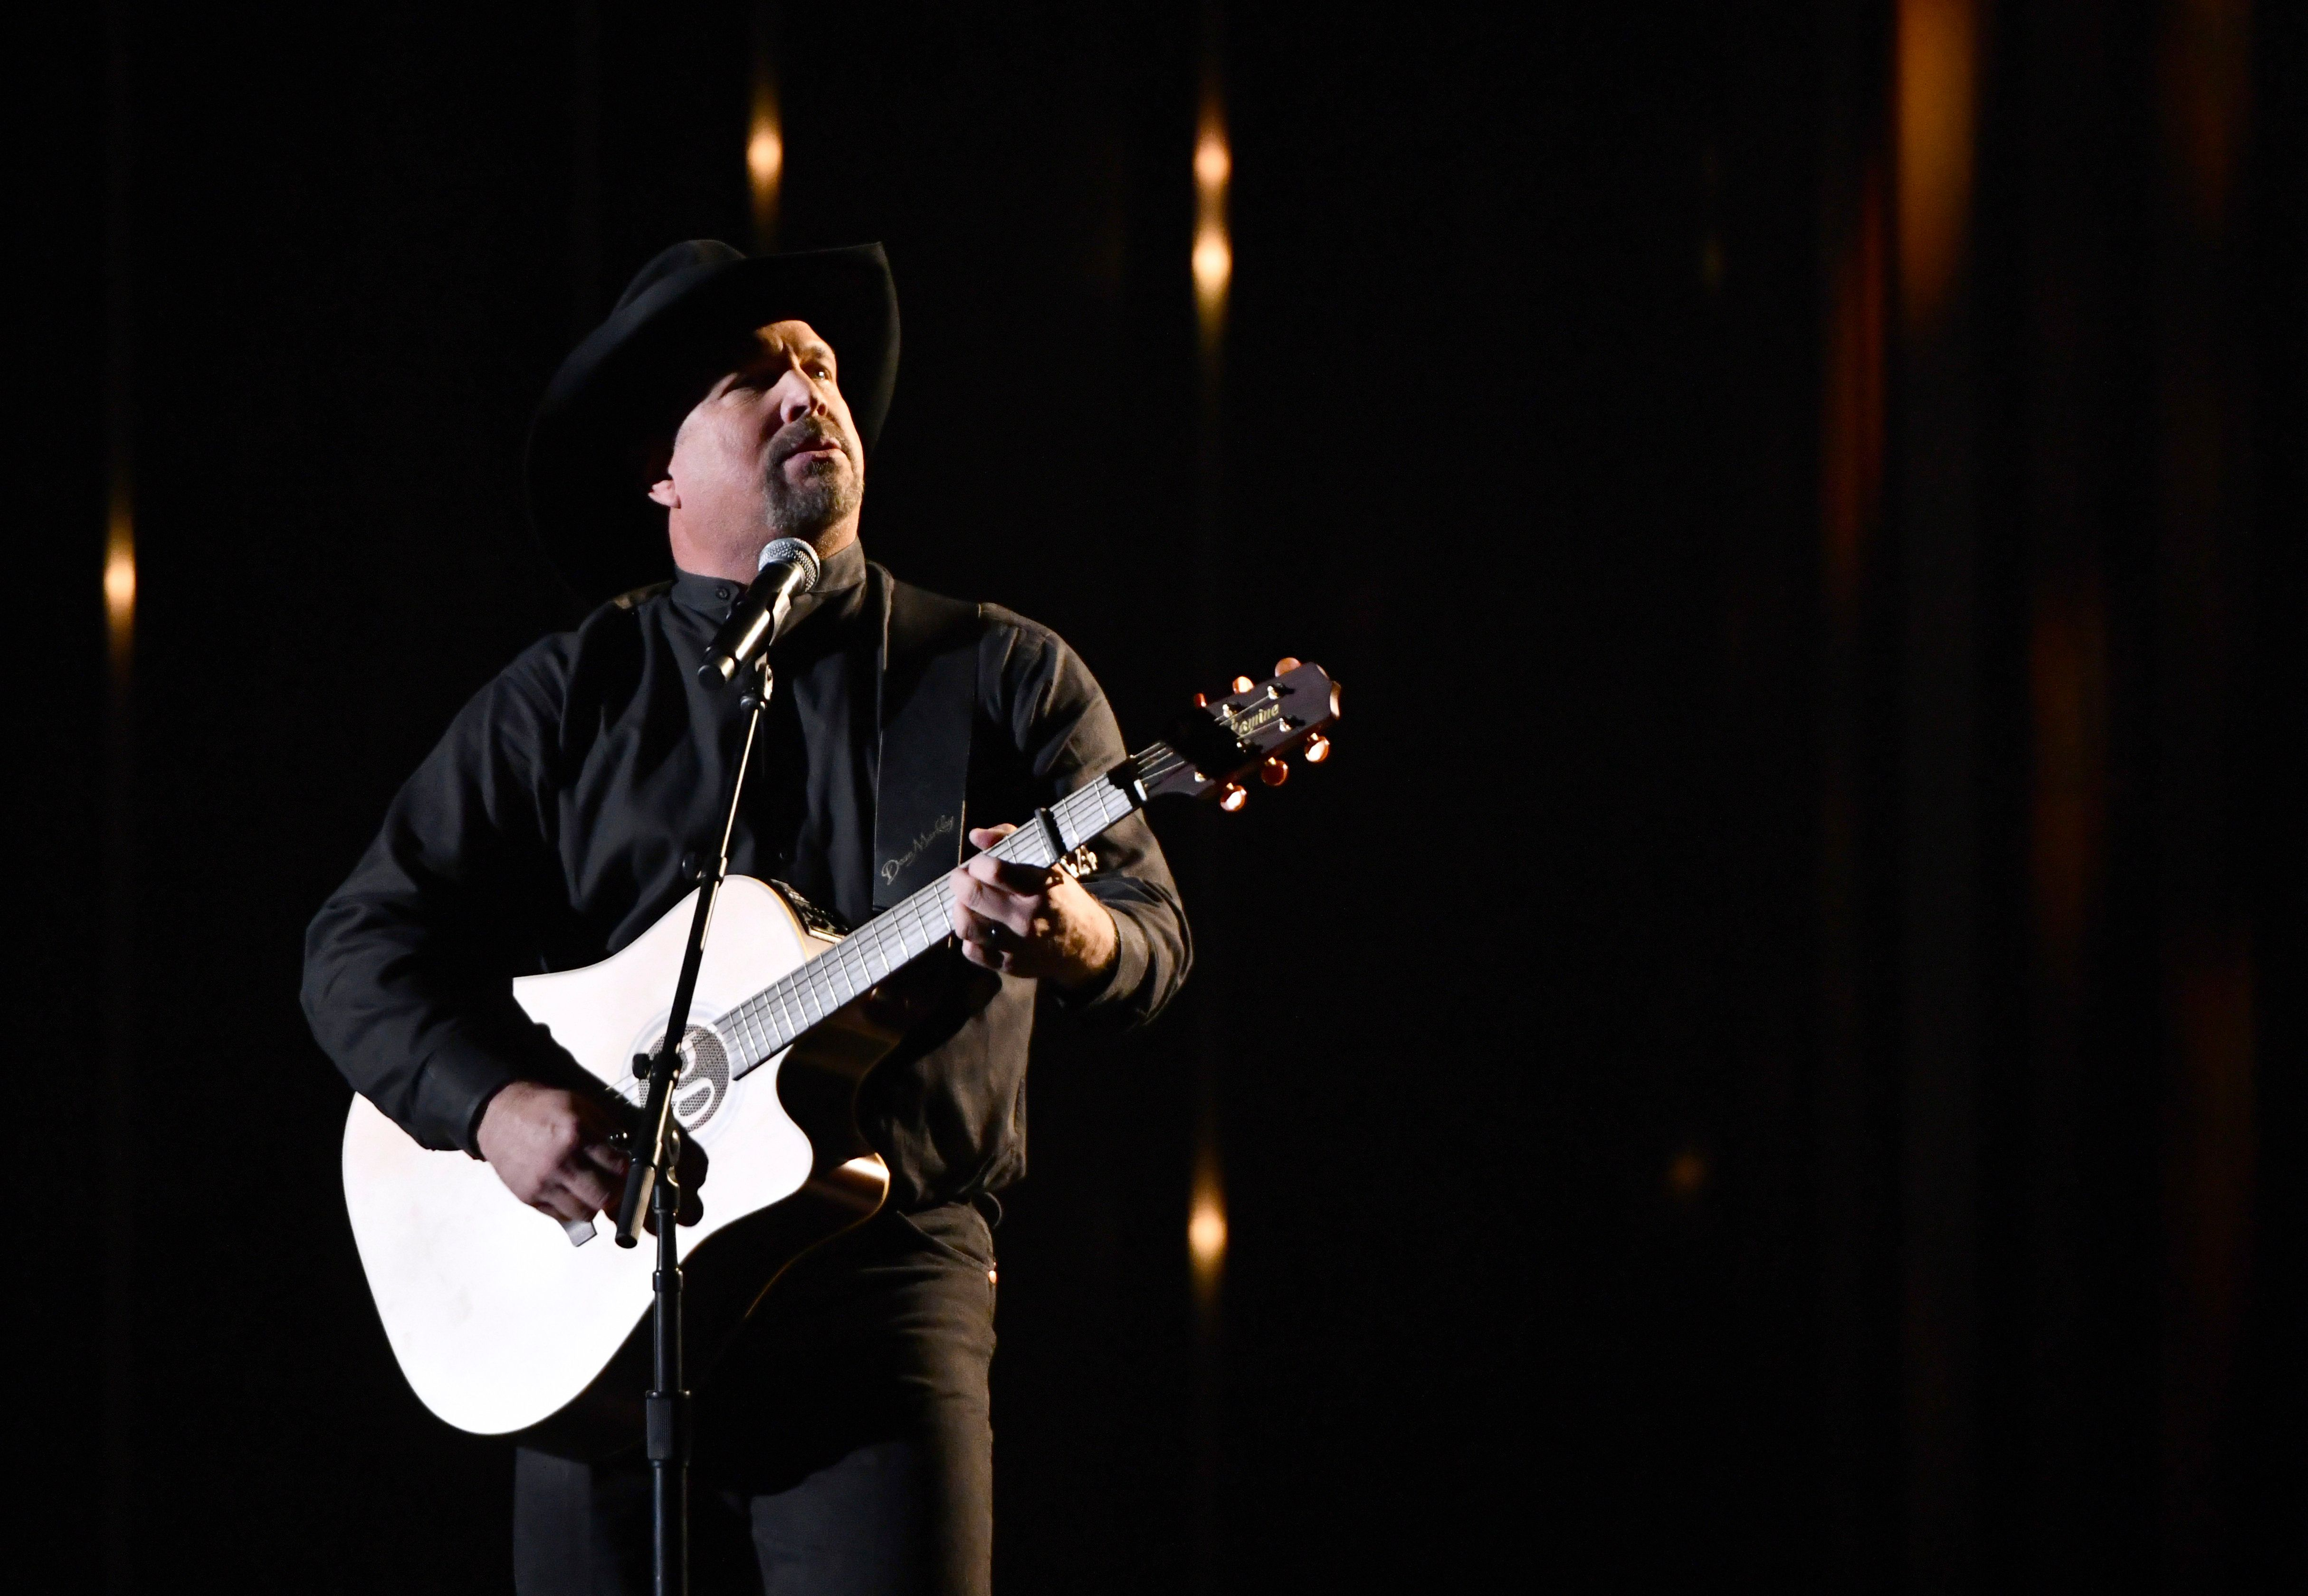 """Let the music unite us with love in their enduring memory,"" Garth Brooks said as a moment of silence honored the 12 killed at Borderline Bar & Grill."